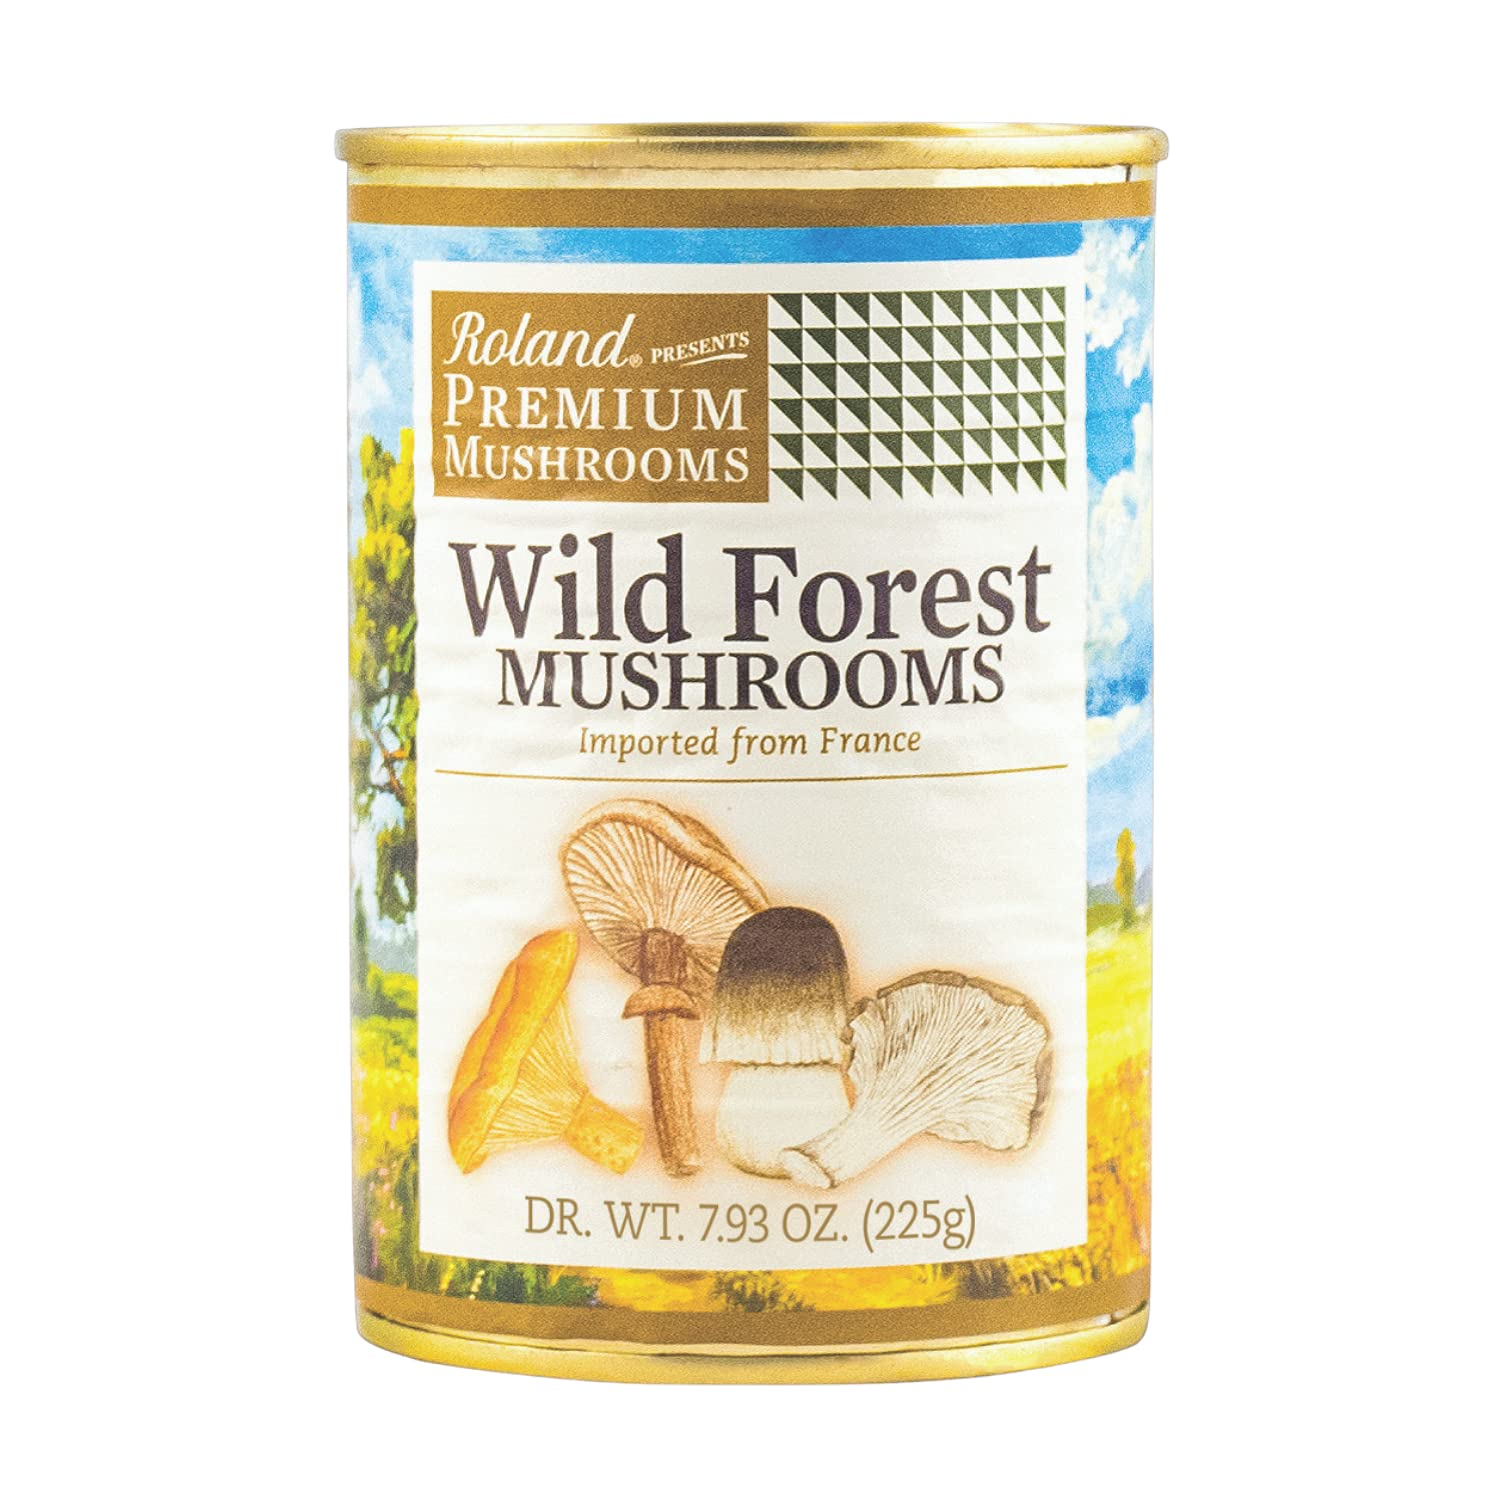 Roland Foods Premium Canned Wild Forest Mushrooms, Specialty Imported Food, 7.93-Ounce Can-4 pack